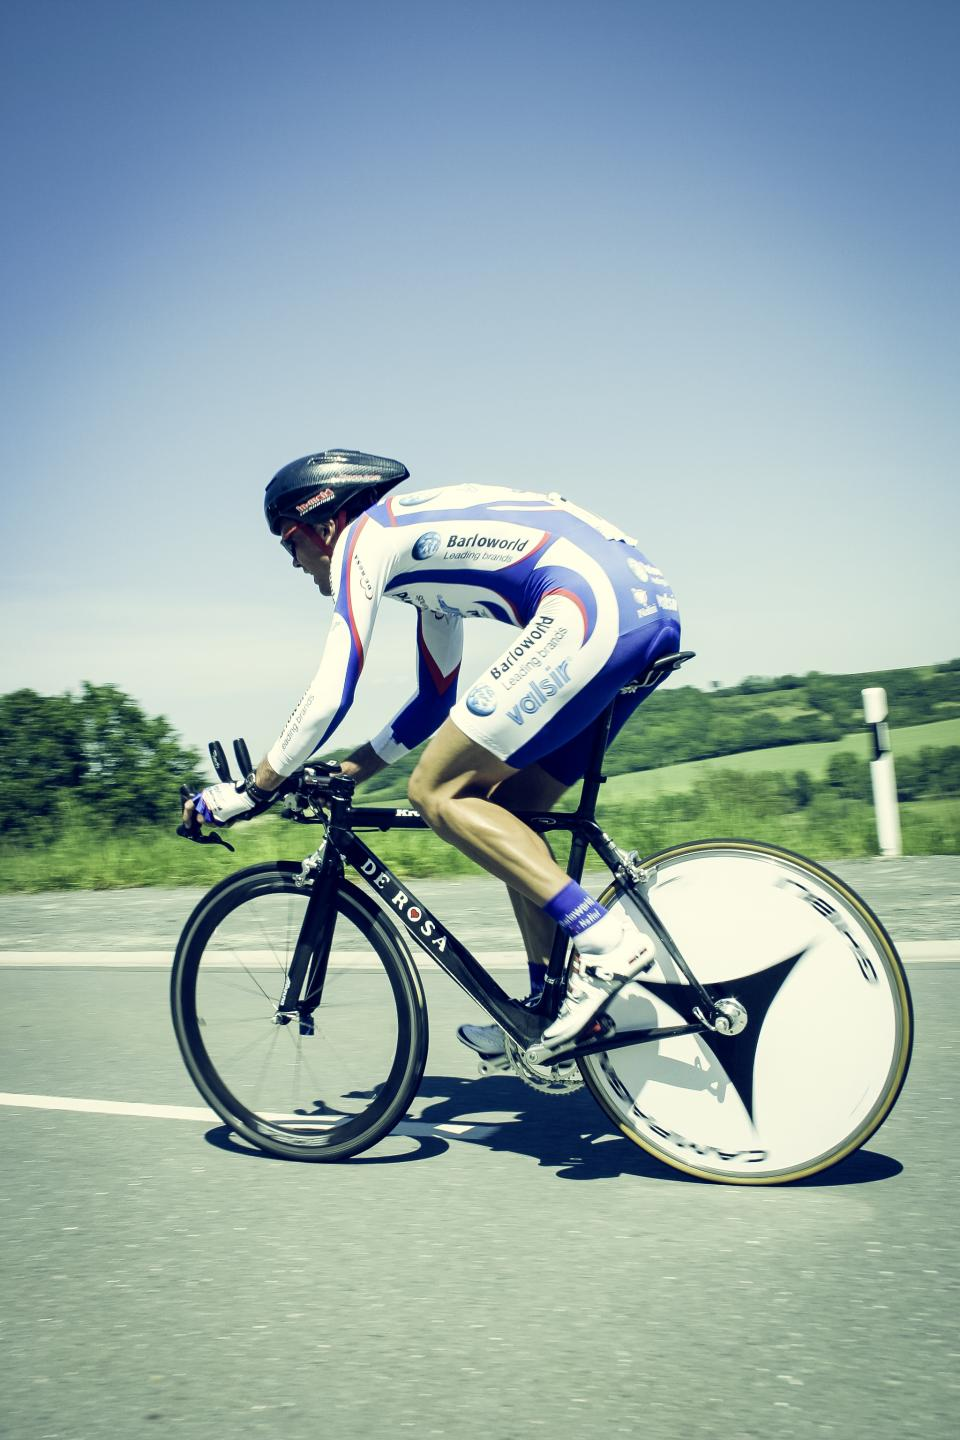 mountain, bike, blue, sky, people, man, ride, bicycle, cyclist, racing, sport, game, sunny, day, road, speed